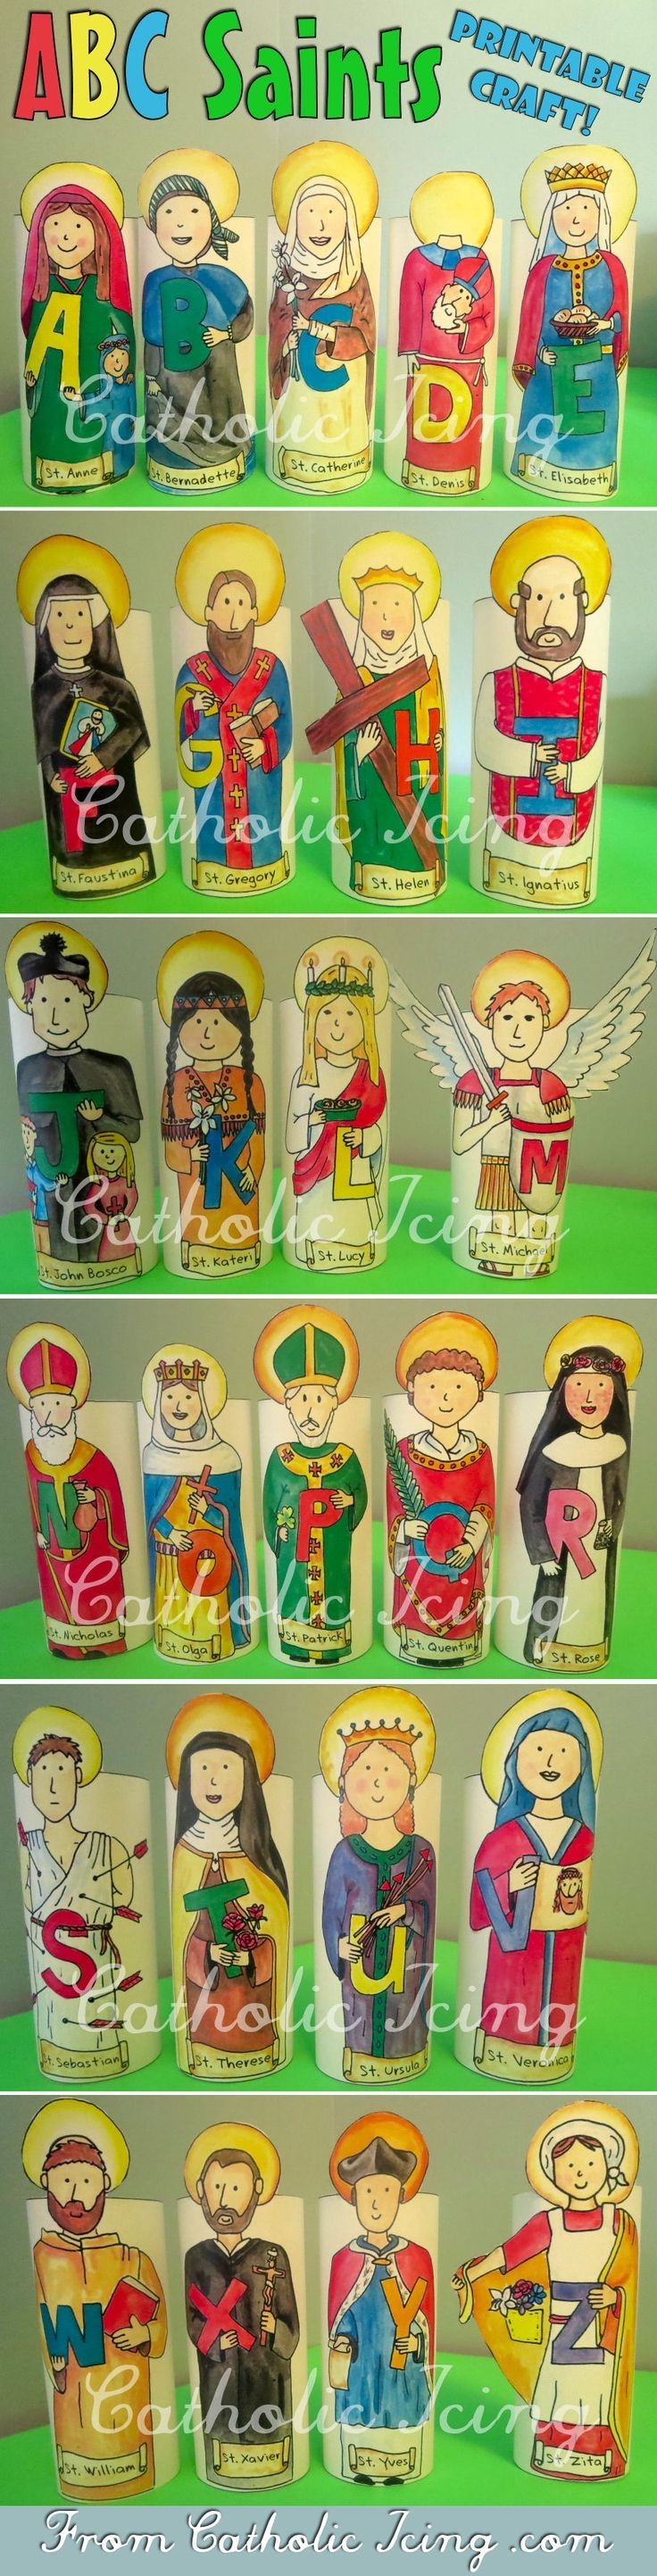 An Alphabet of Catholic Saints: Stand-up printable crafts! Craft Saints with your kids from A-Z. So much fun, and I love all the little details these include. They can be printed in black and white or in color. :-)